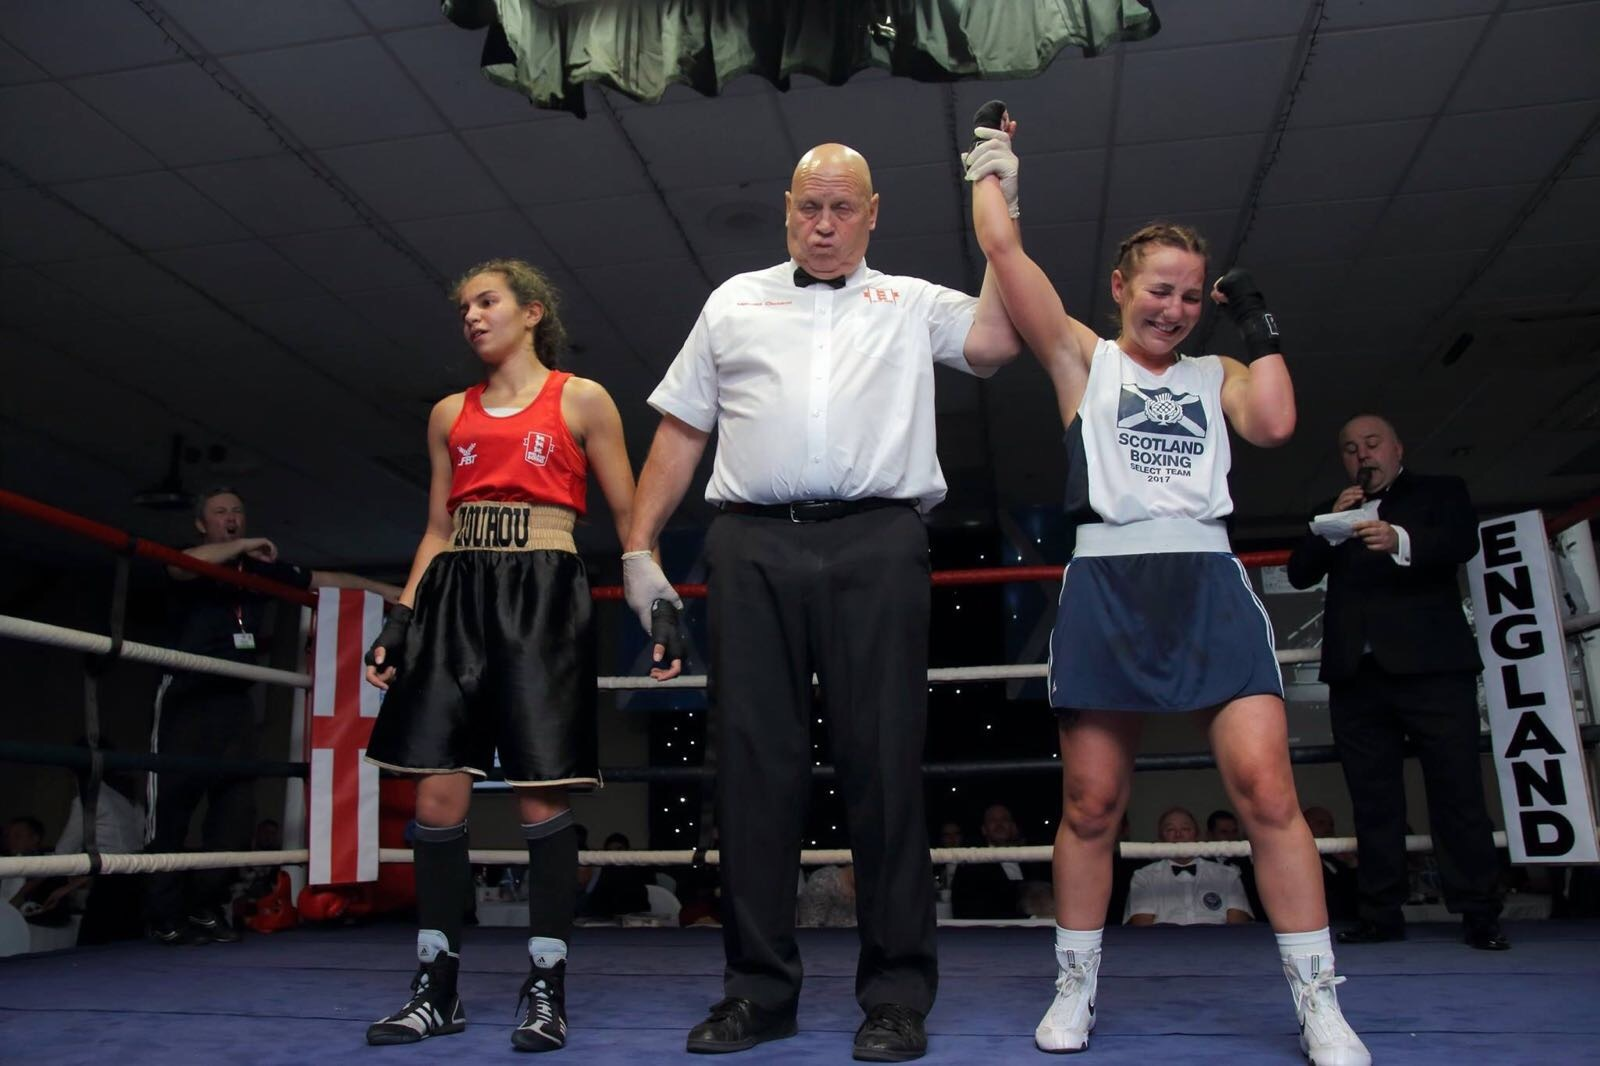 Emma McCulloch is declared the winner in her bout with Miriam Zouho.